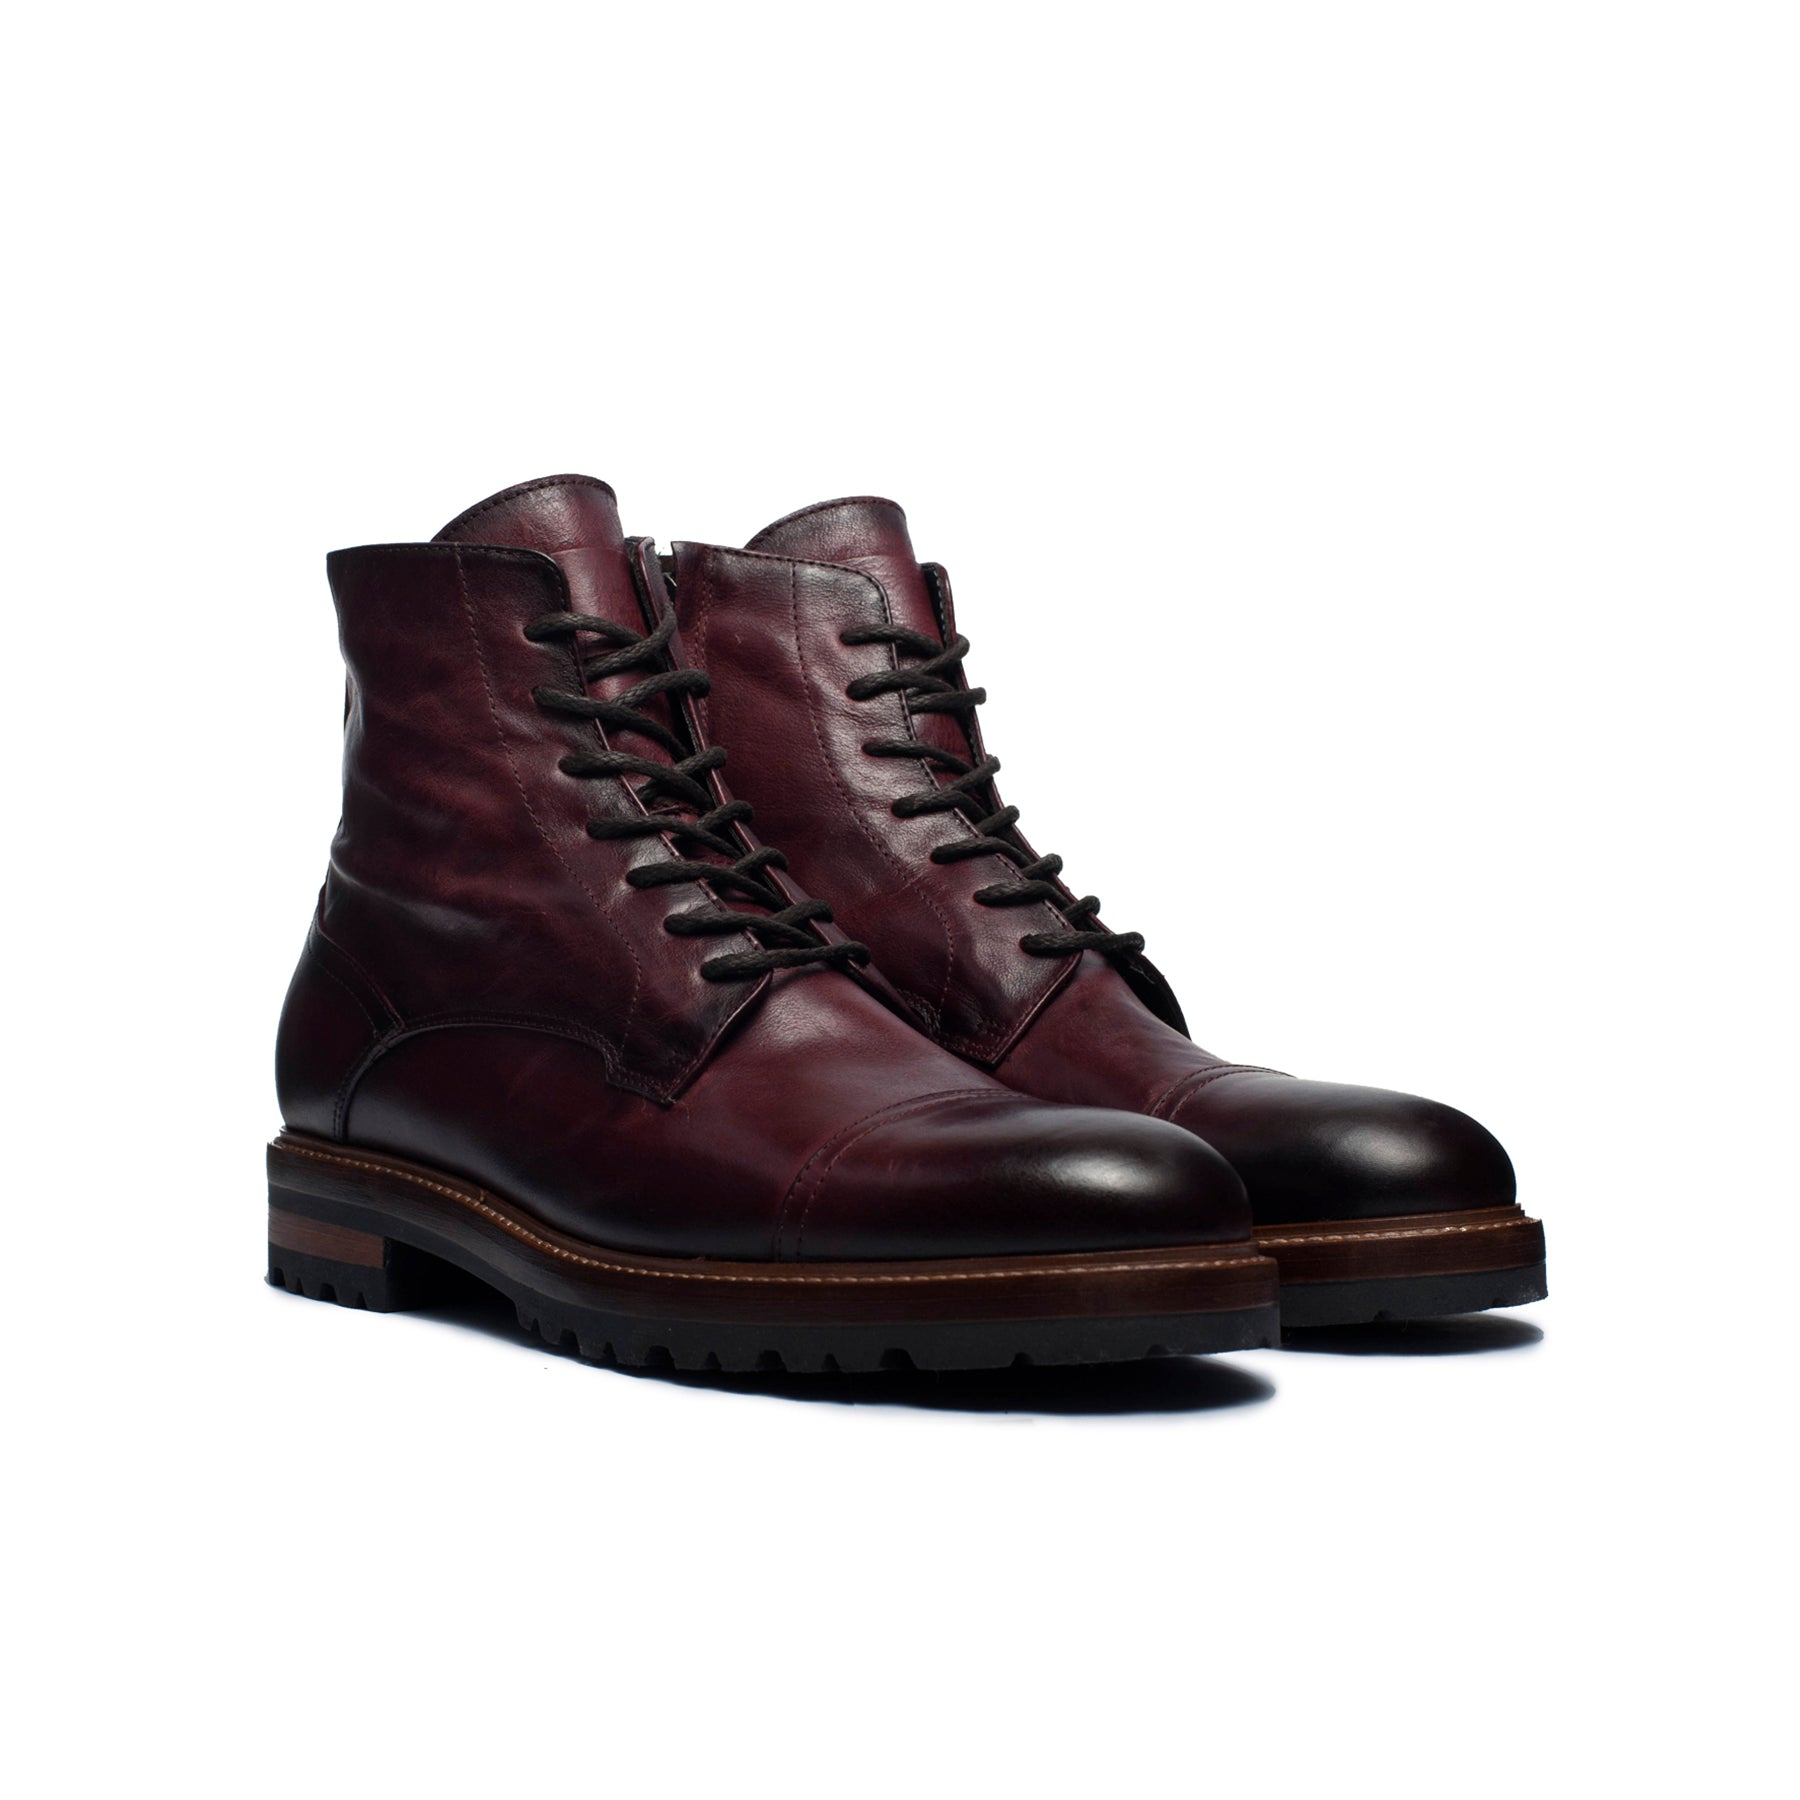 Stephano Bordo Leather Boots